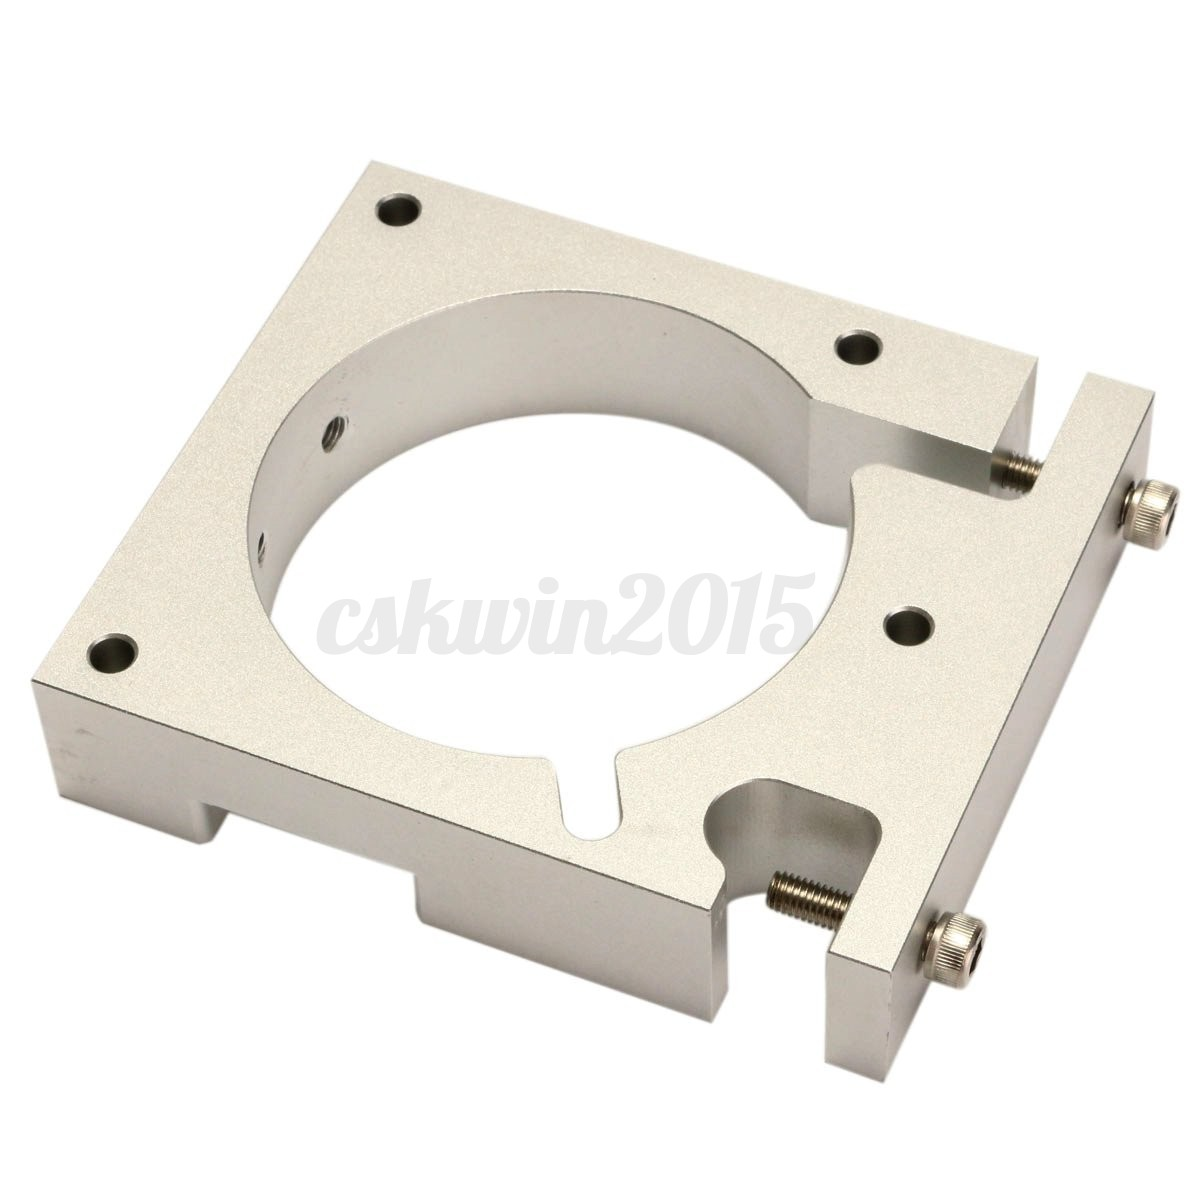 CNC Machine Parts Trim 70mm Around Router Spindle Mount For Shapeoko